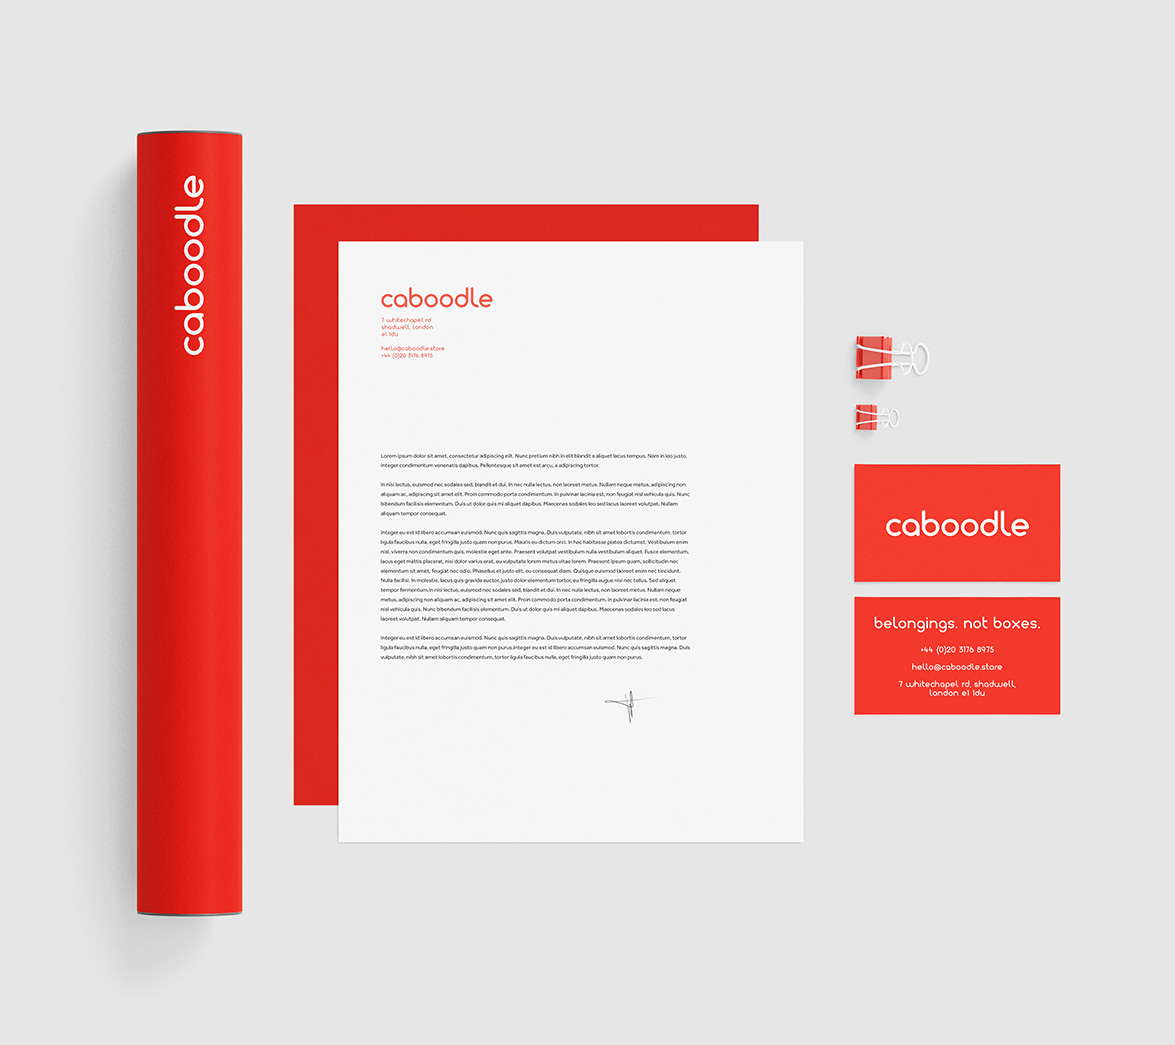 Stationery design for new startup brand Caboodle, designed by White Bear Studio